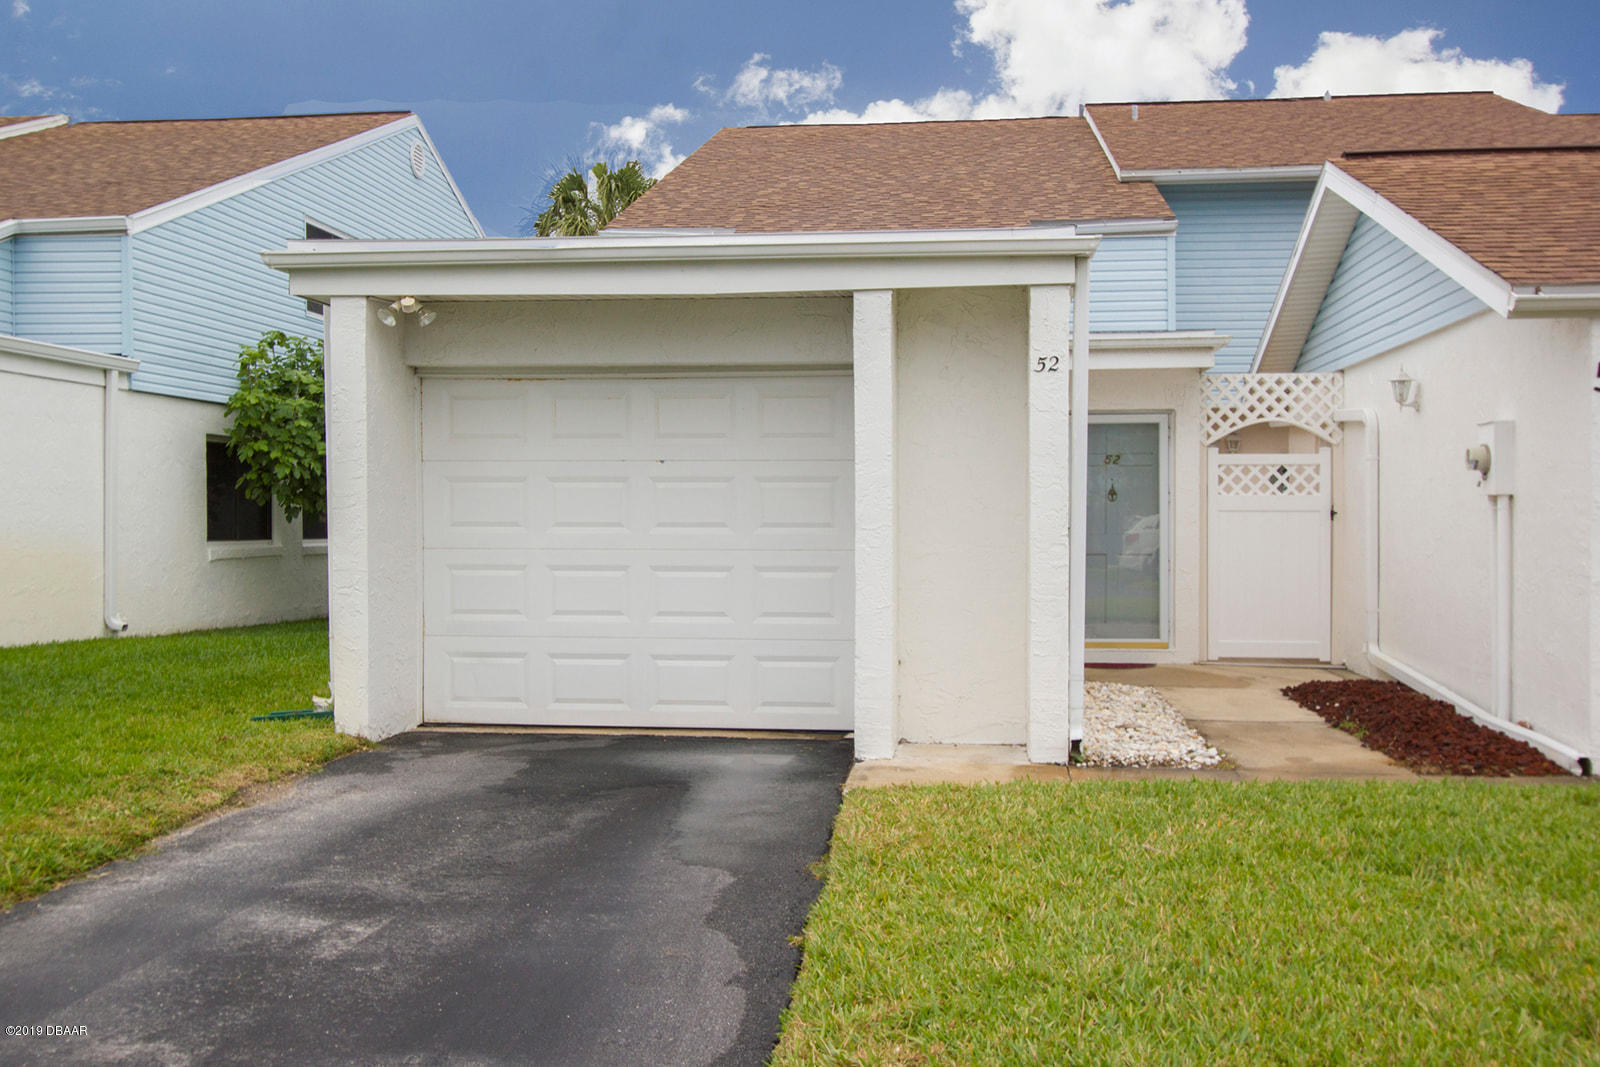 52 Chippingwood Lane 32176 - One of Ormond Beach Homes for Sale